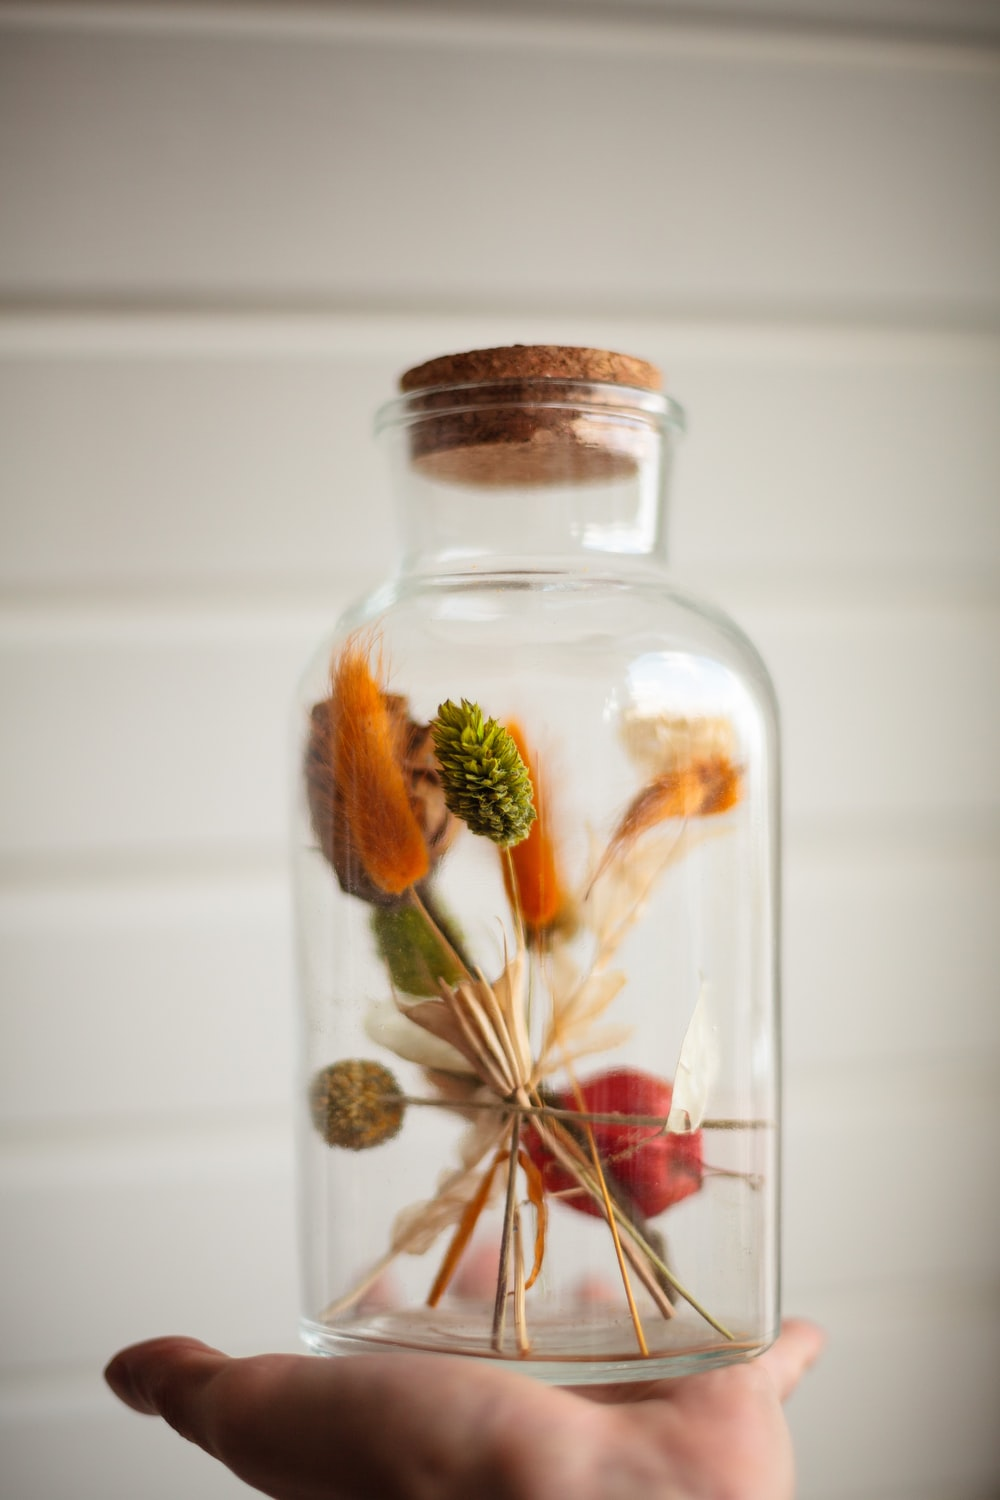 yellow and green plant in clear glass jar